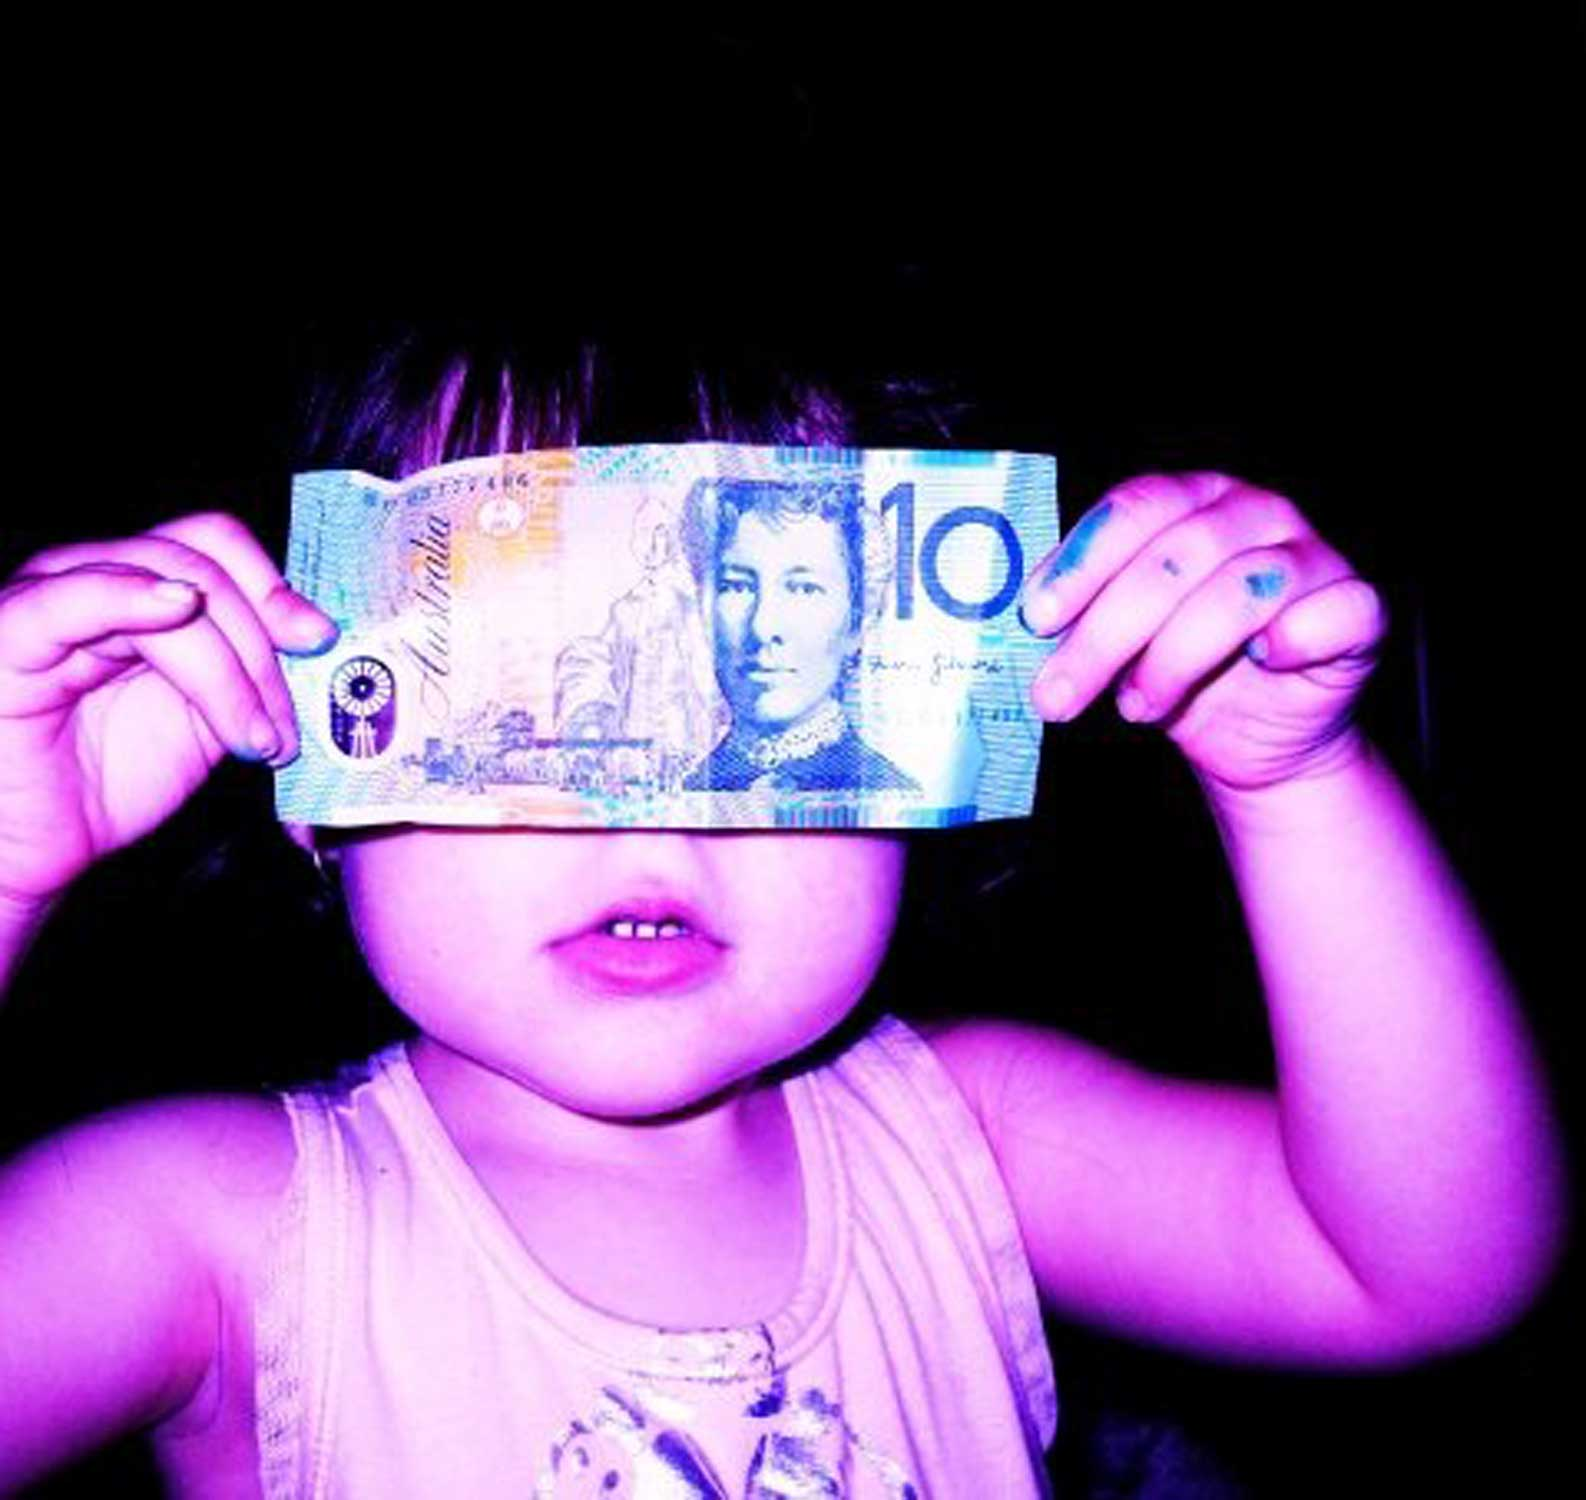 Tookii things to do with kids with money one of the activities for kids